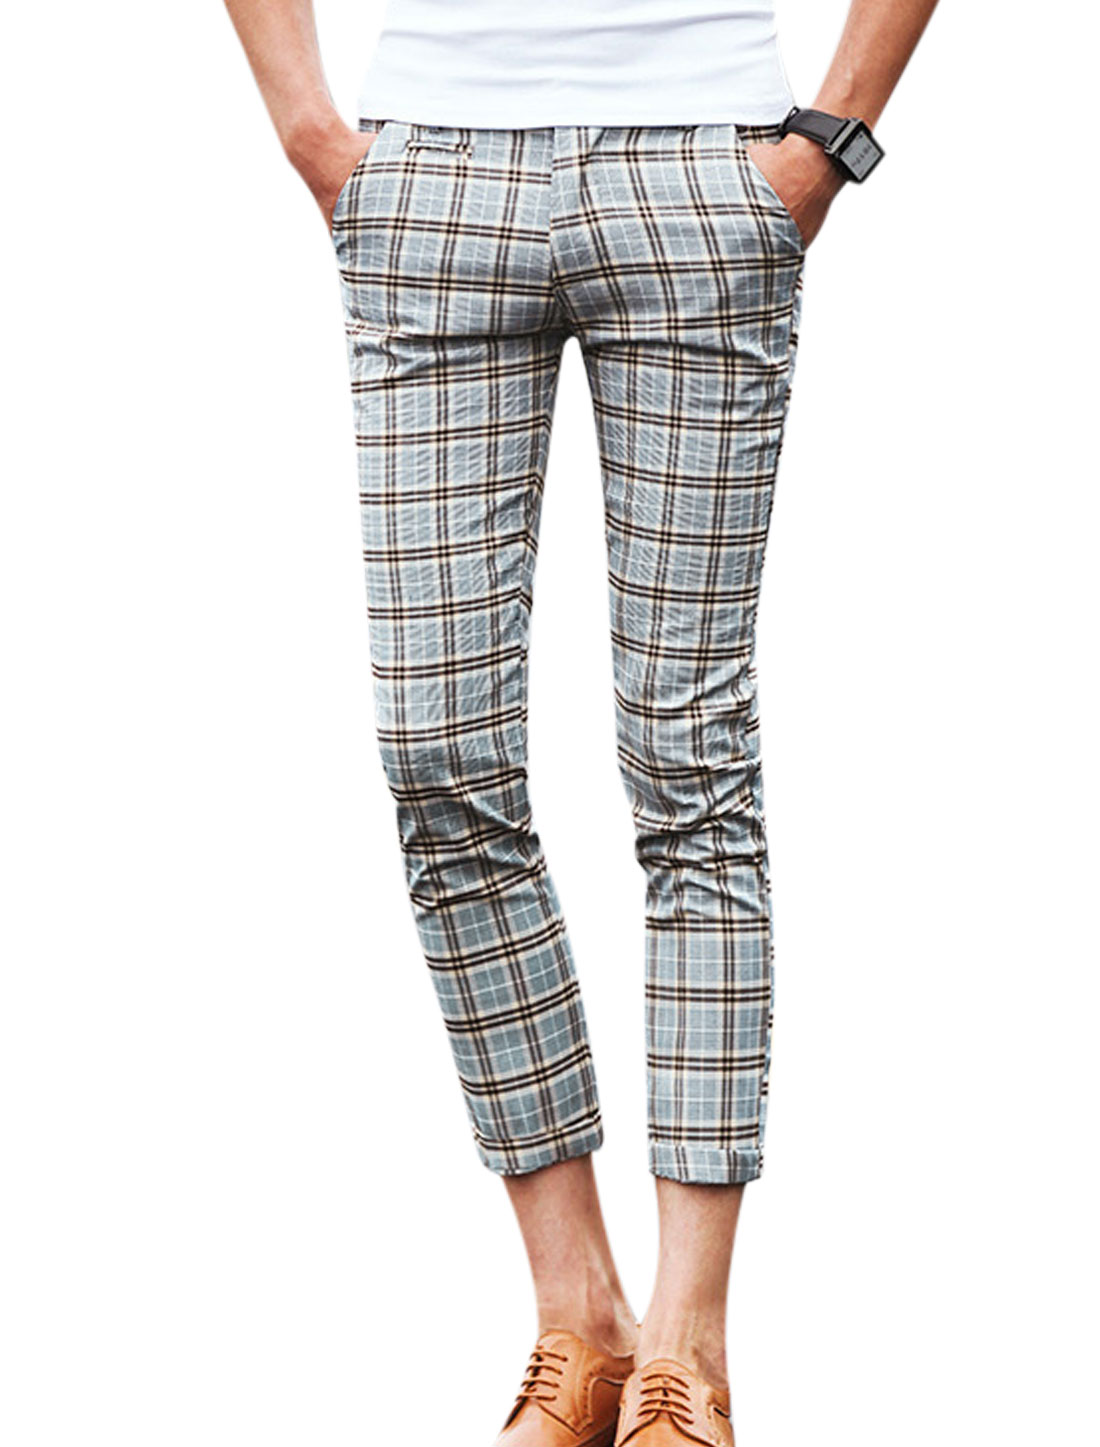 Men Plaids Two Slant Pockets Front Slim Fit Casual Cropped Pants Beige Coffee W30